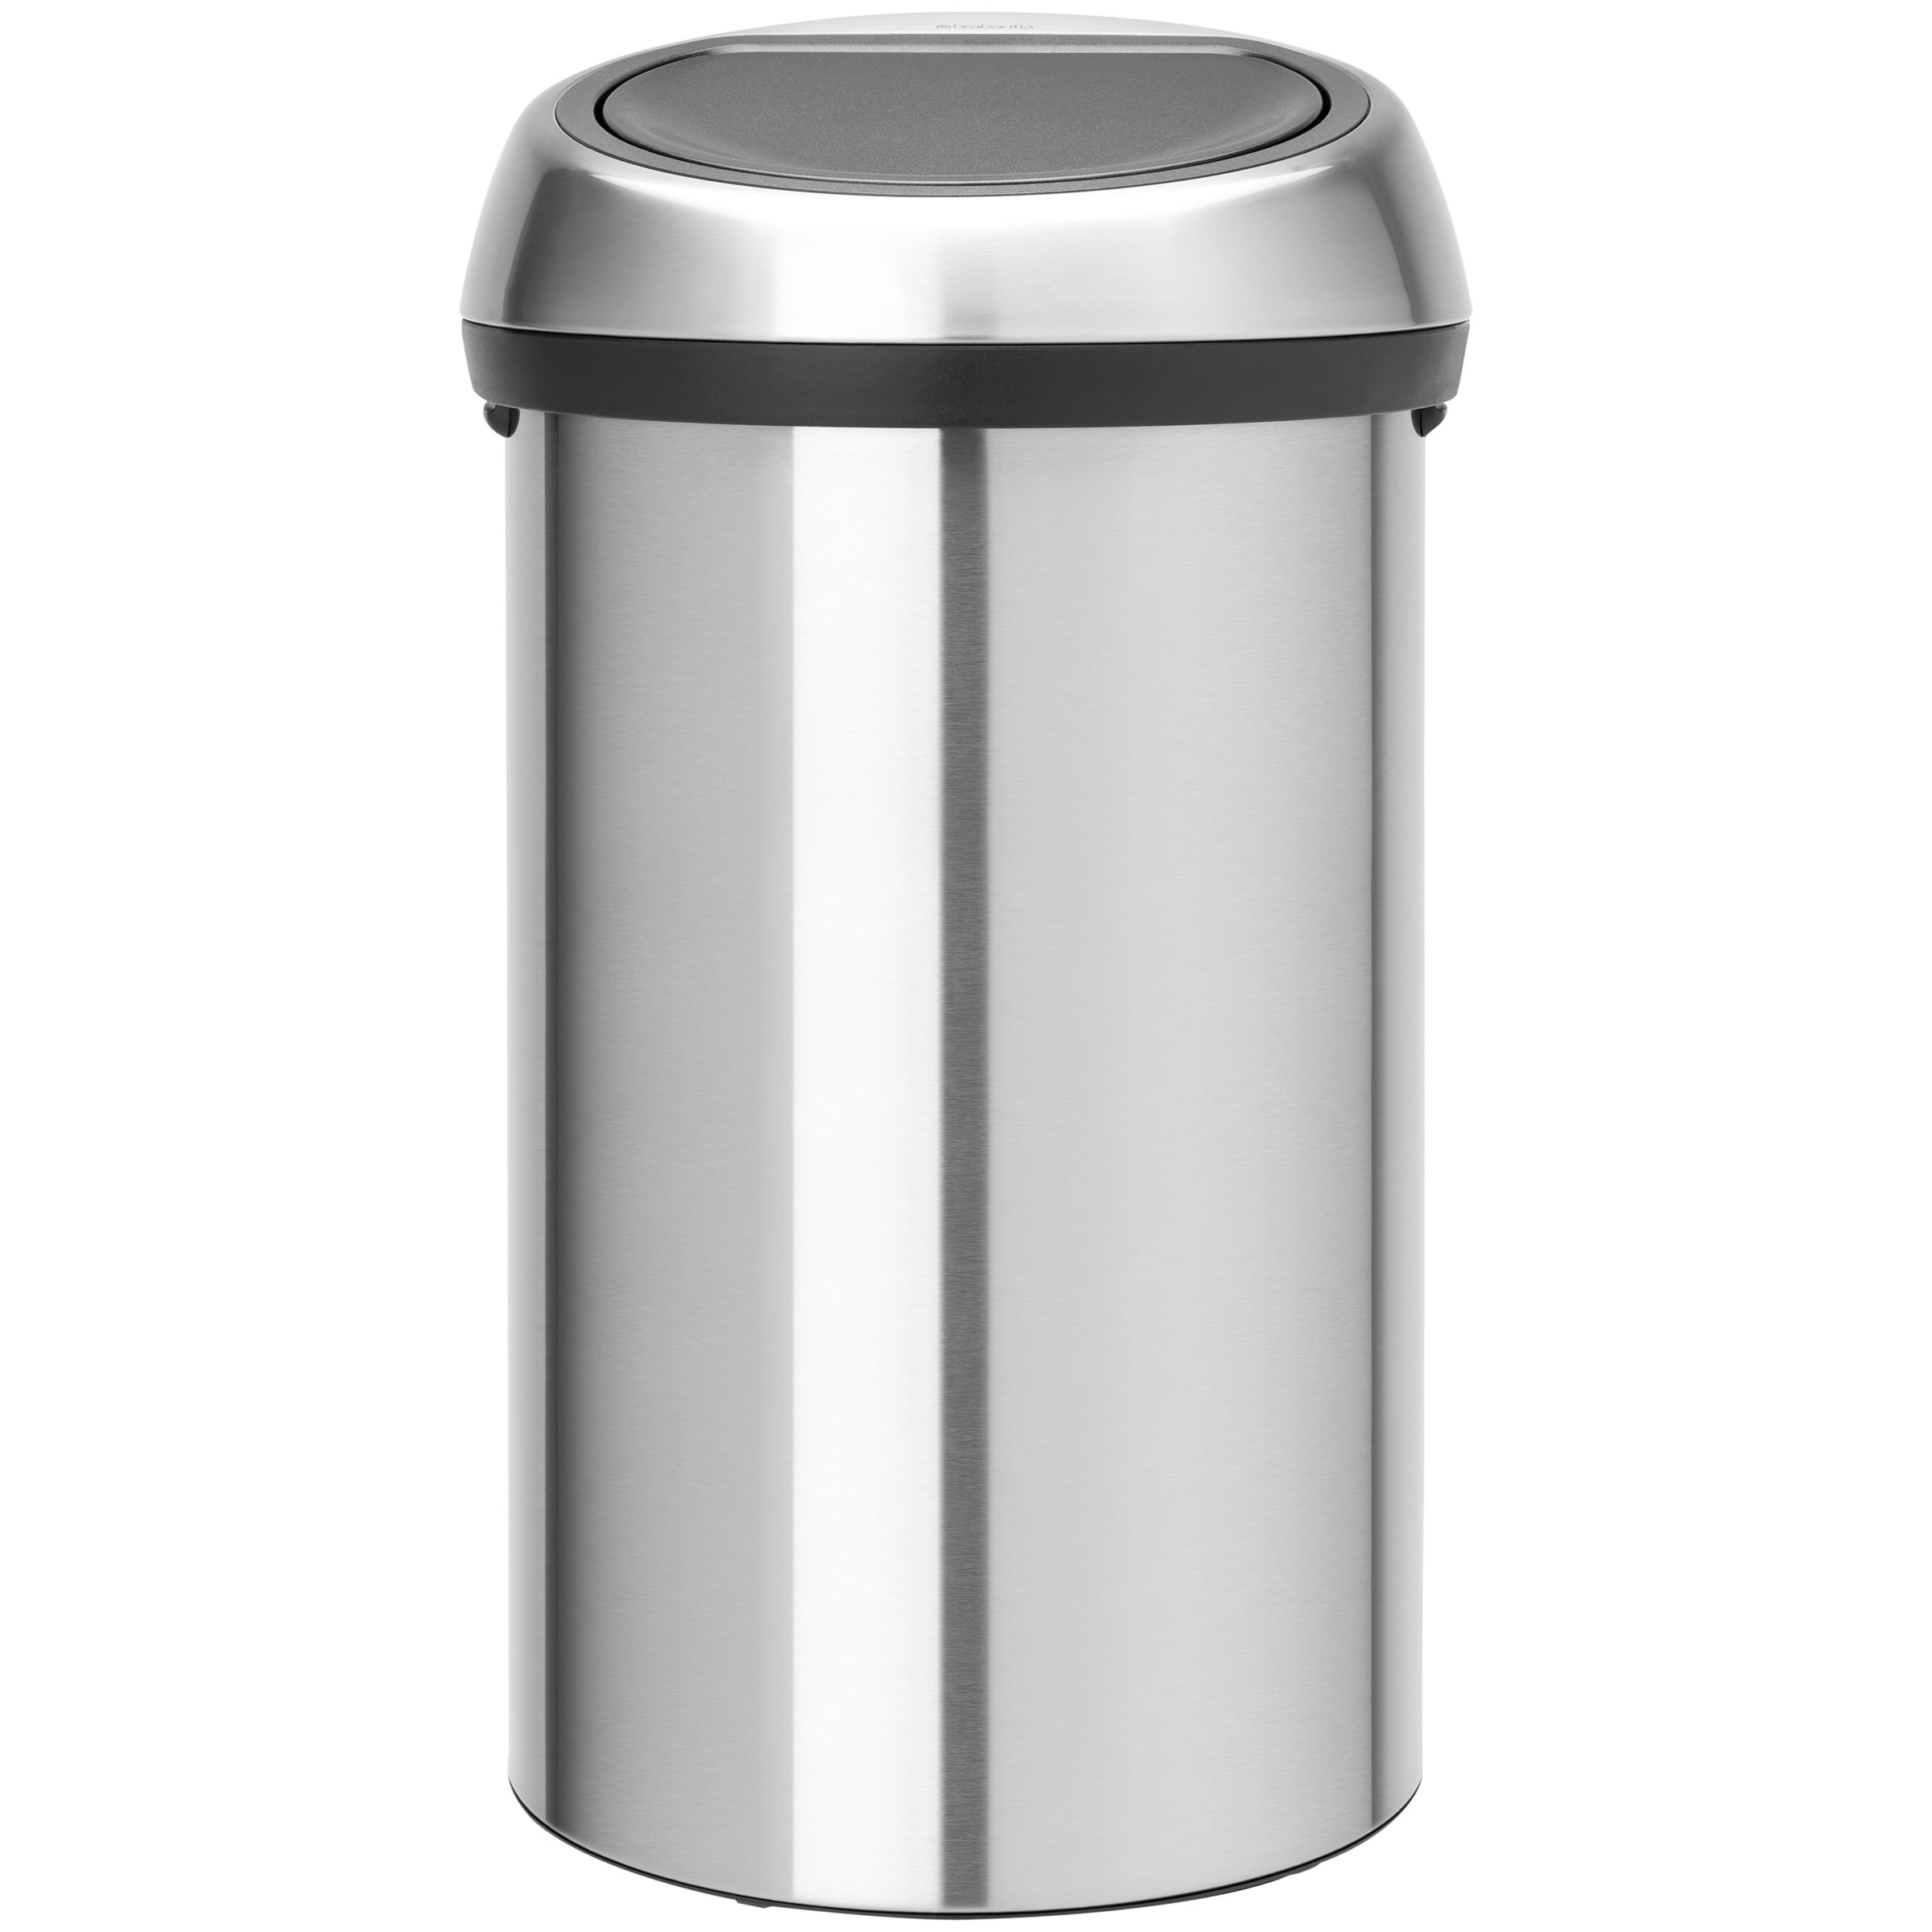 Brabantia Brabantia Touch Bin, Fingerprint Proof Matt Steel, 60L